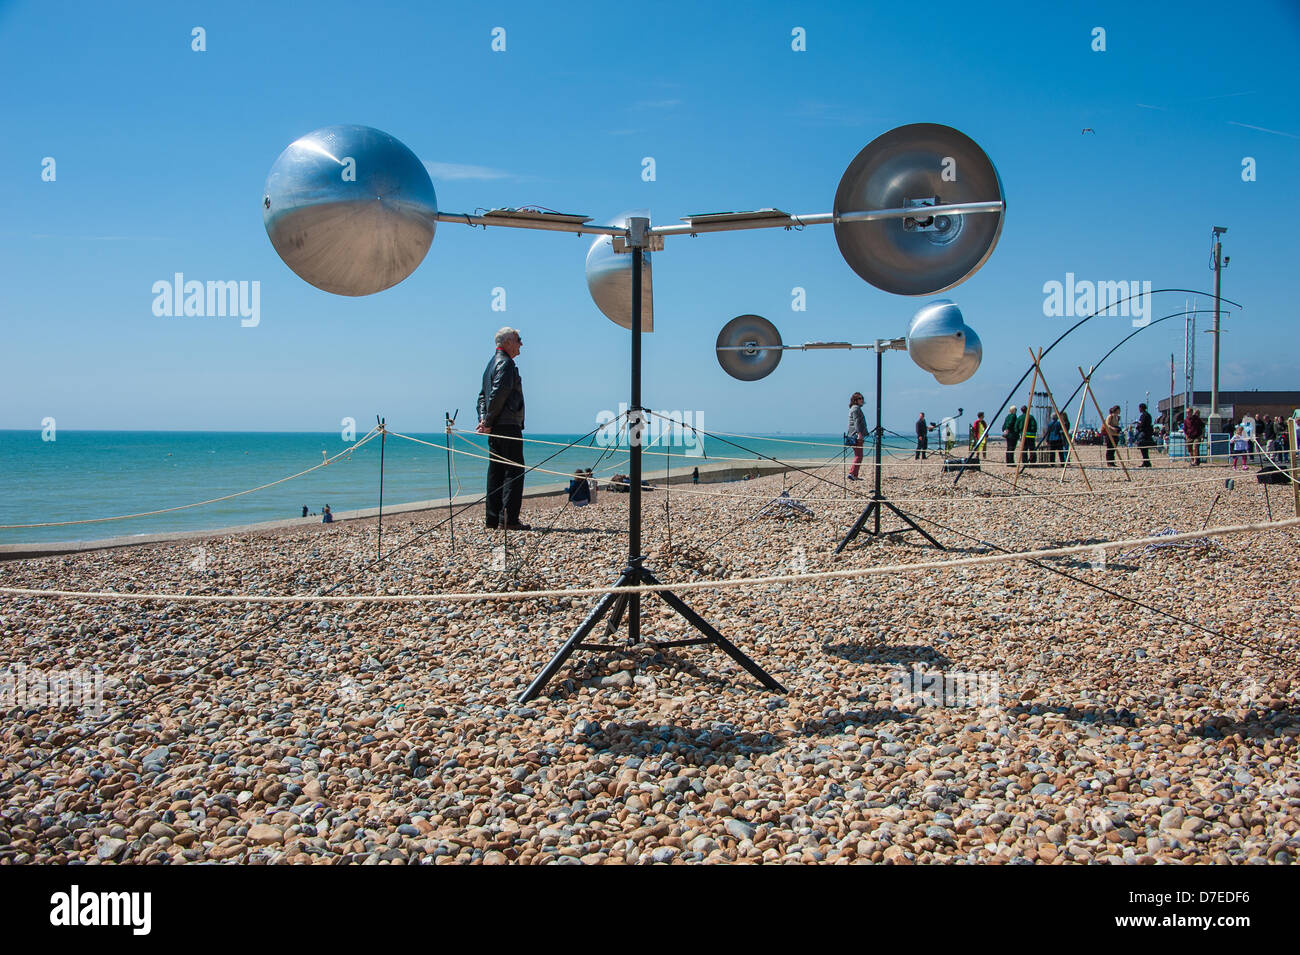 Brighton, UK. 5th May 2013. Mike Blow's Arpeggi - part of 'Audible Forces' Aeolian music on the beach - Stock Image